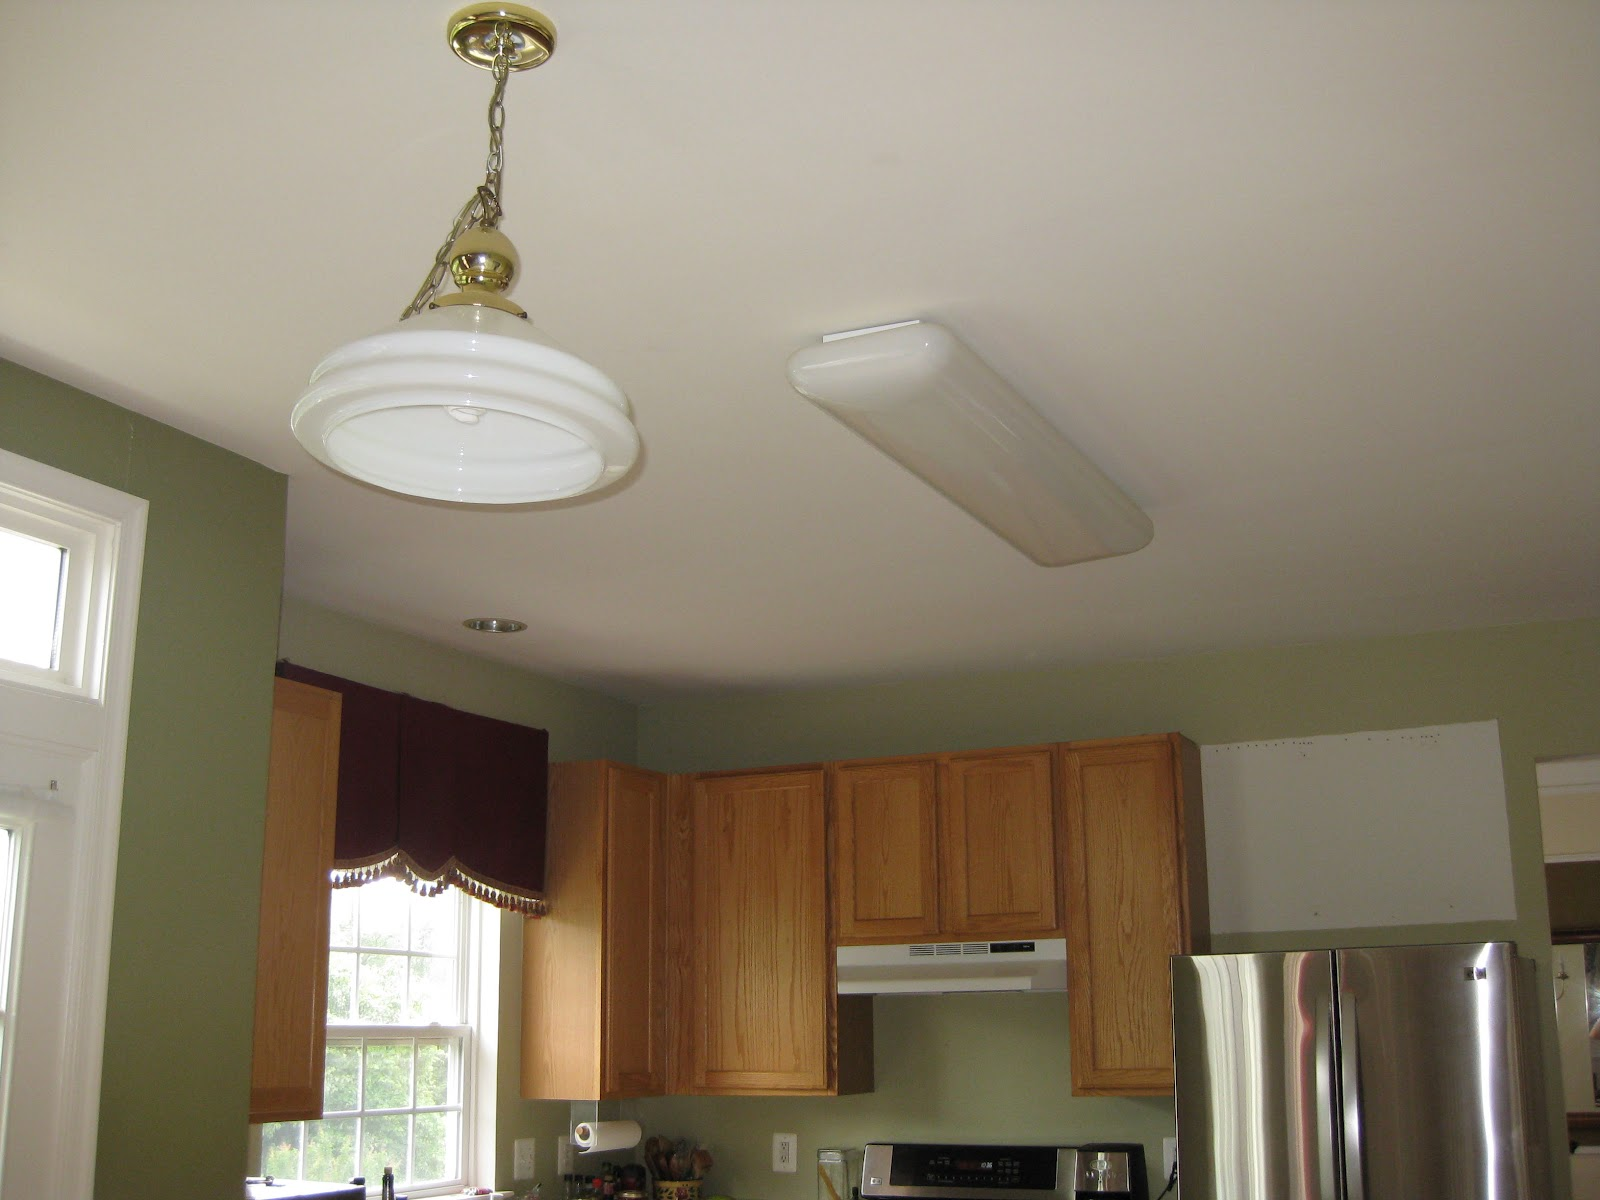 Install Pendant Light Thinking About Installing Recessed Lights Remodelando